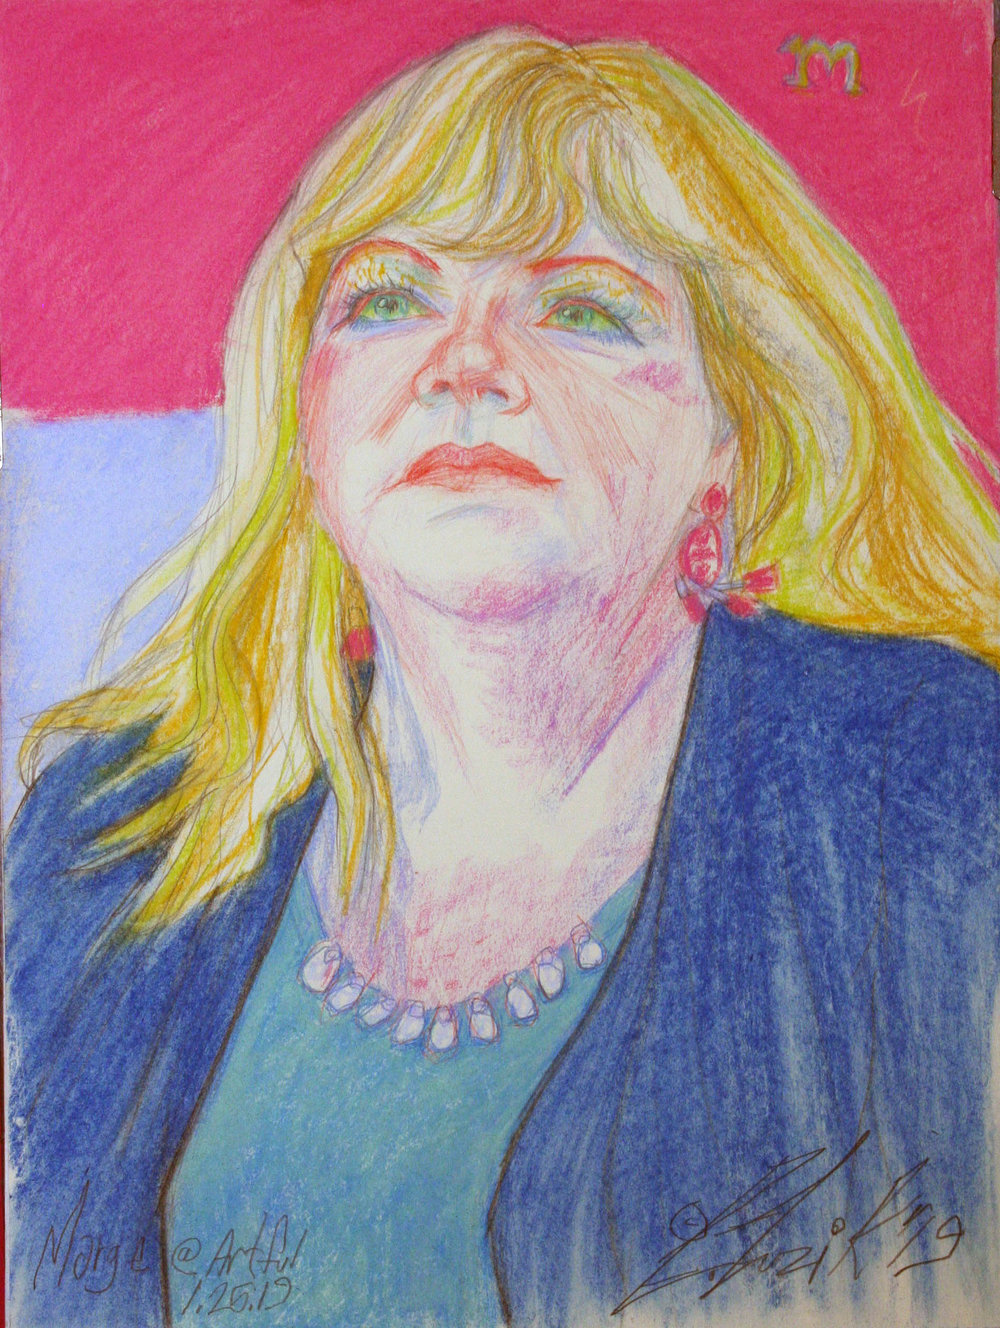 Larry Zuzik did this pastel drawing.